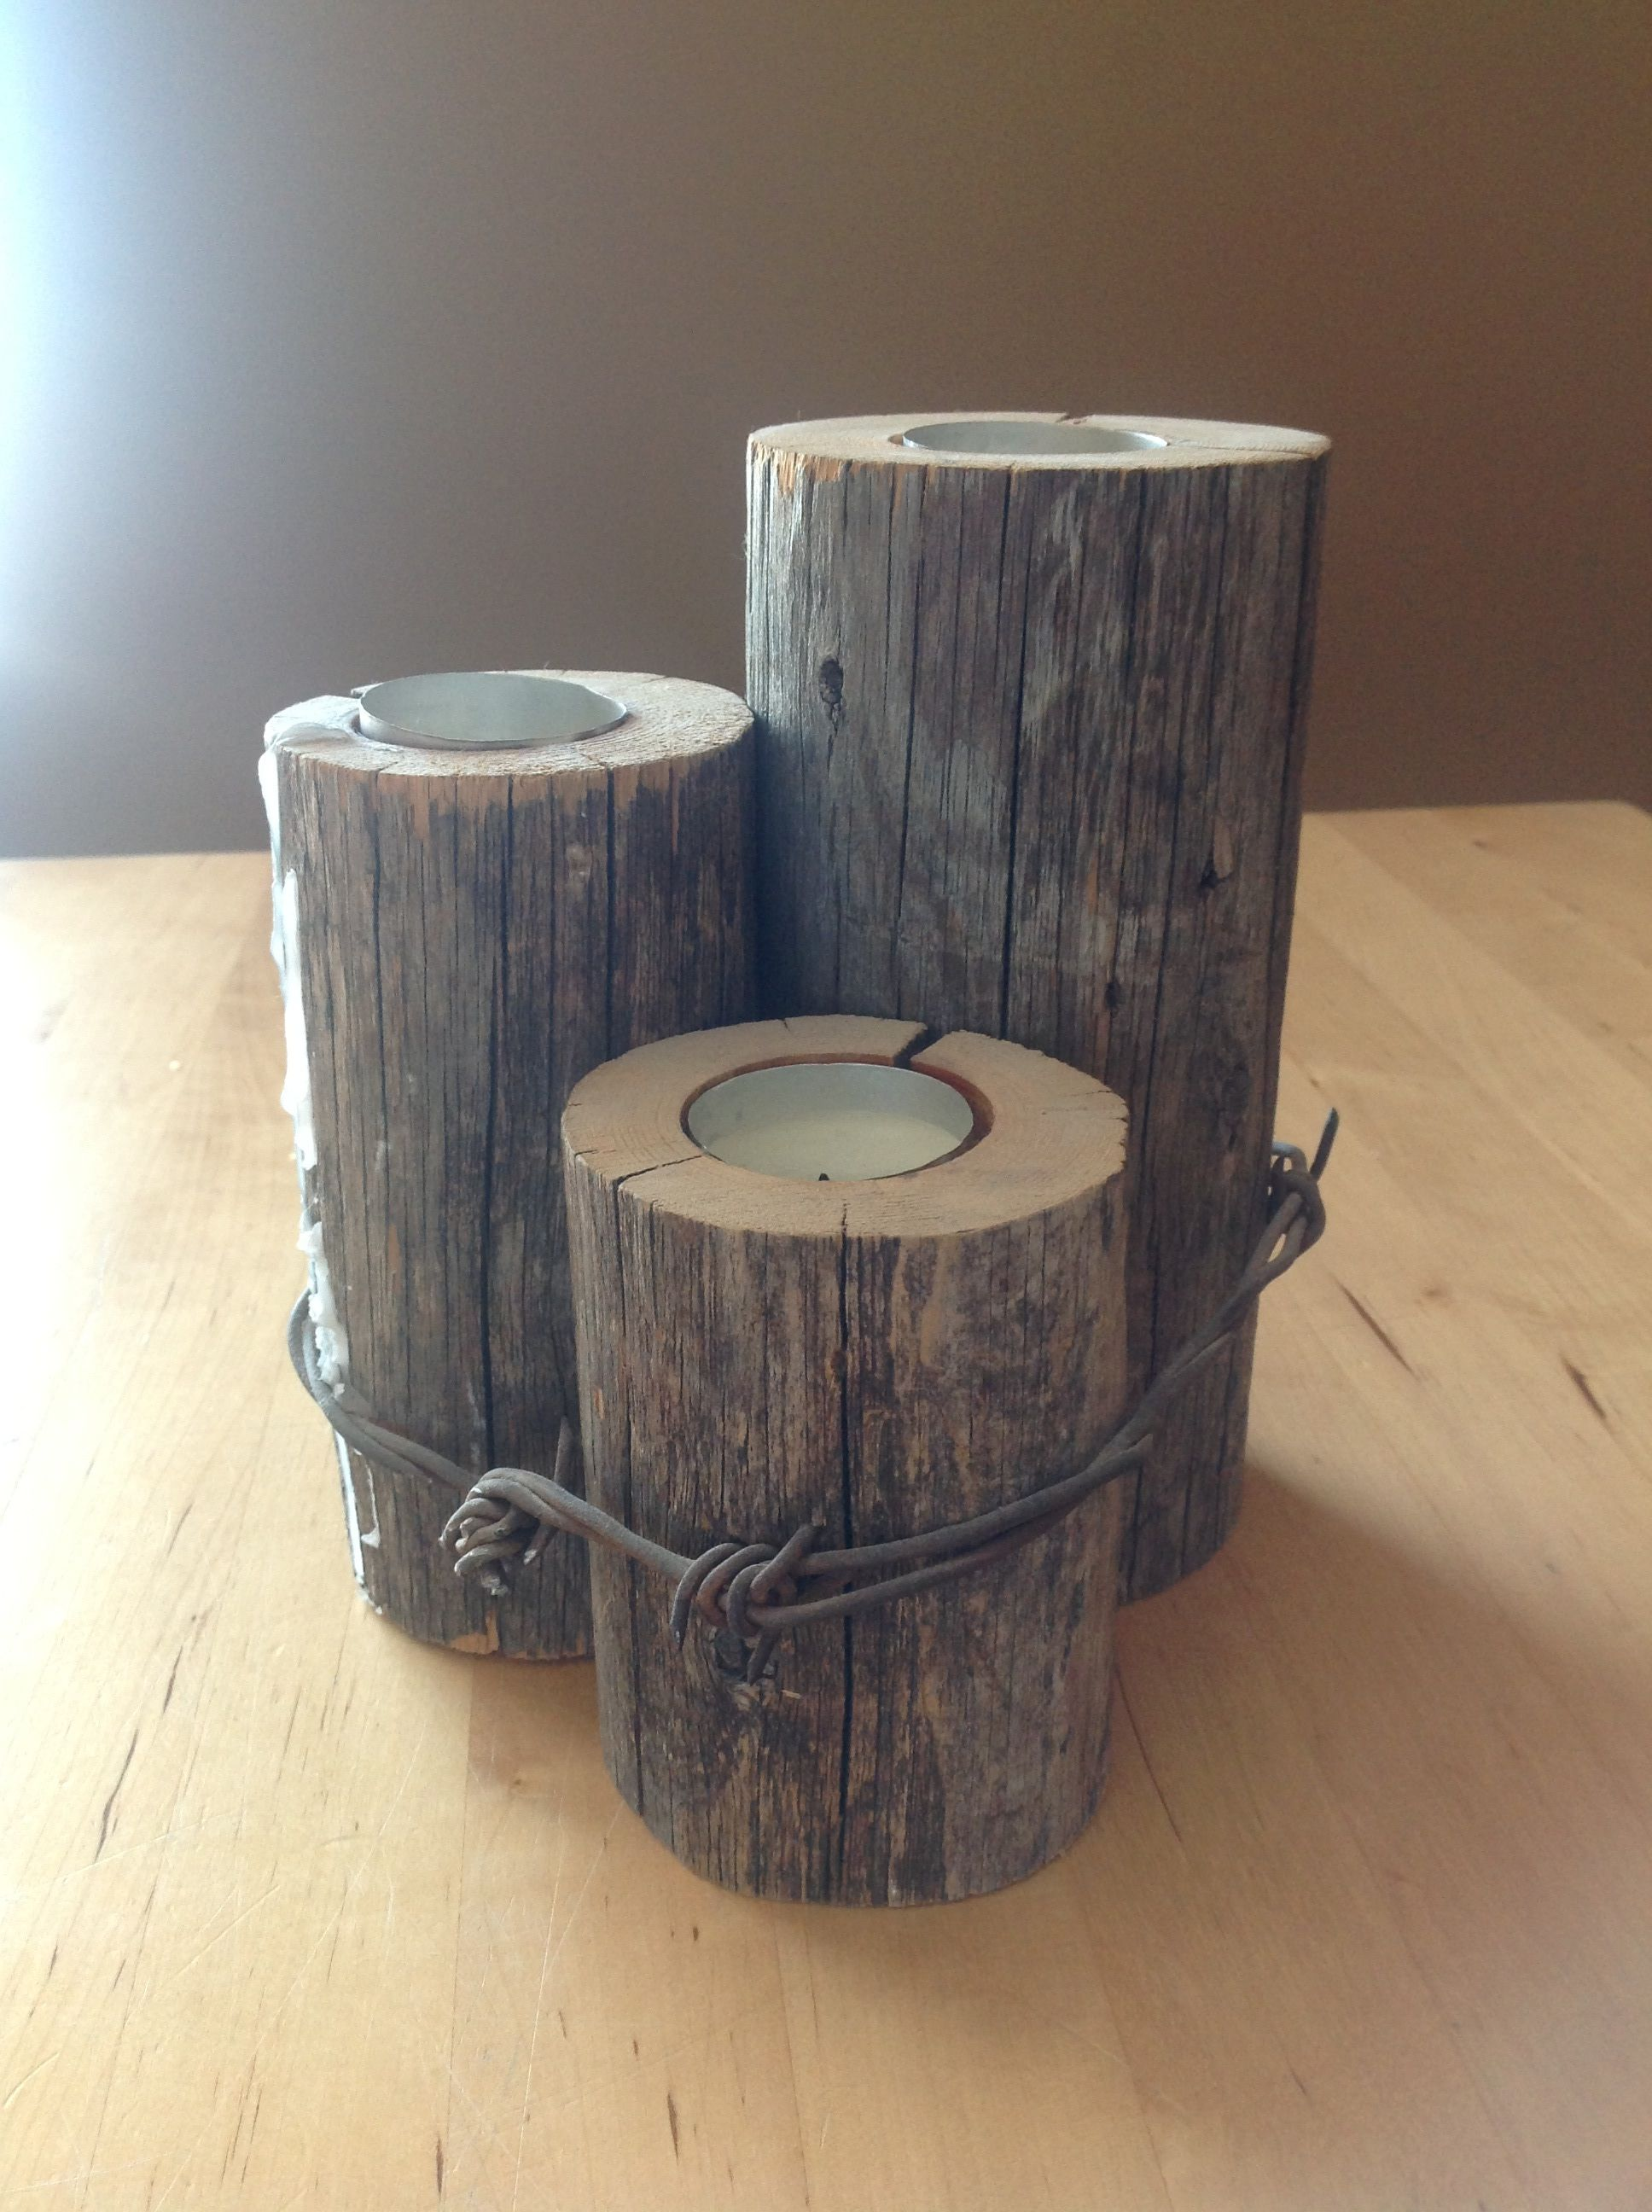 Candle Centre Piece Made From Old Fence Post And Barbed Wire